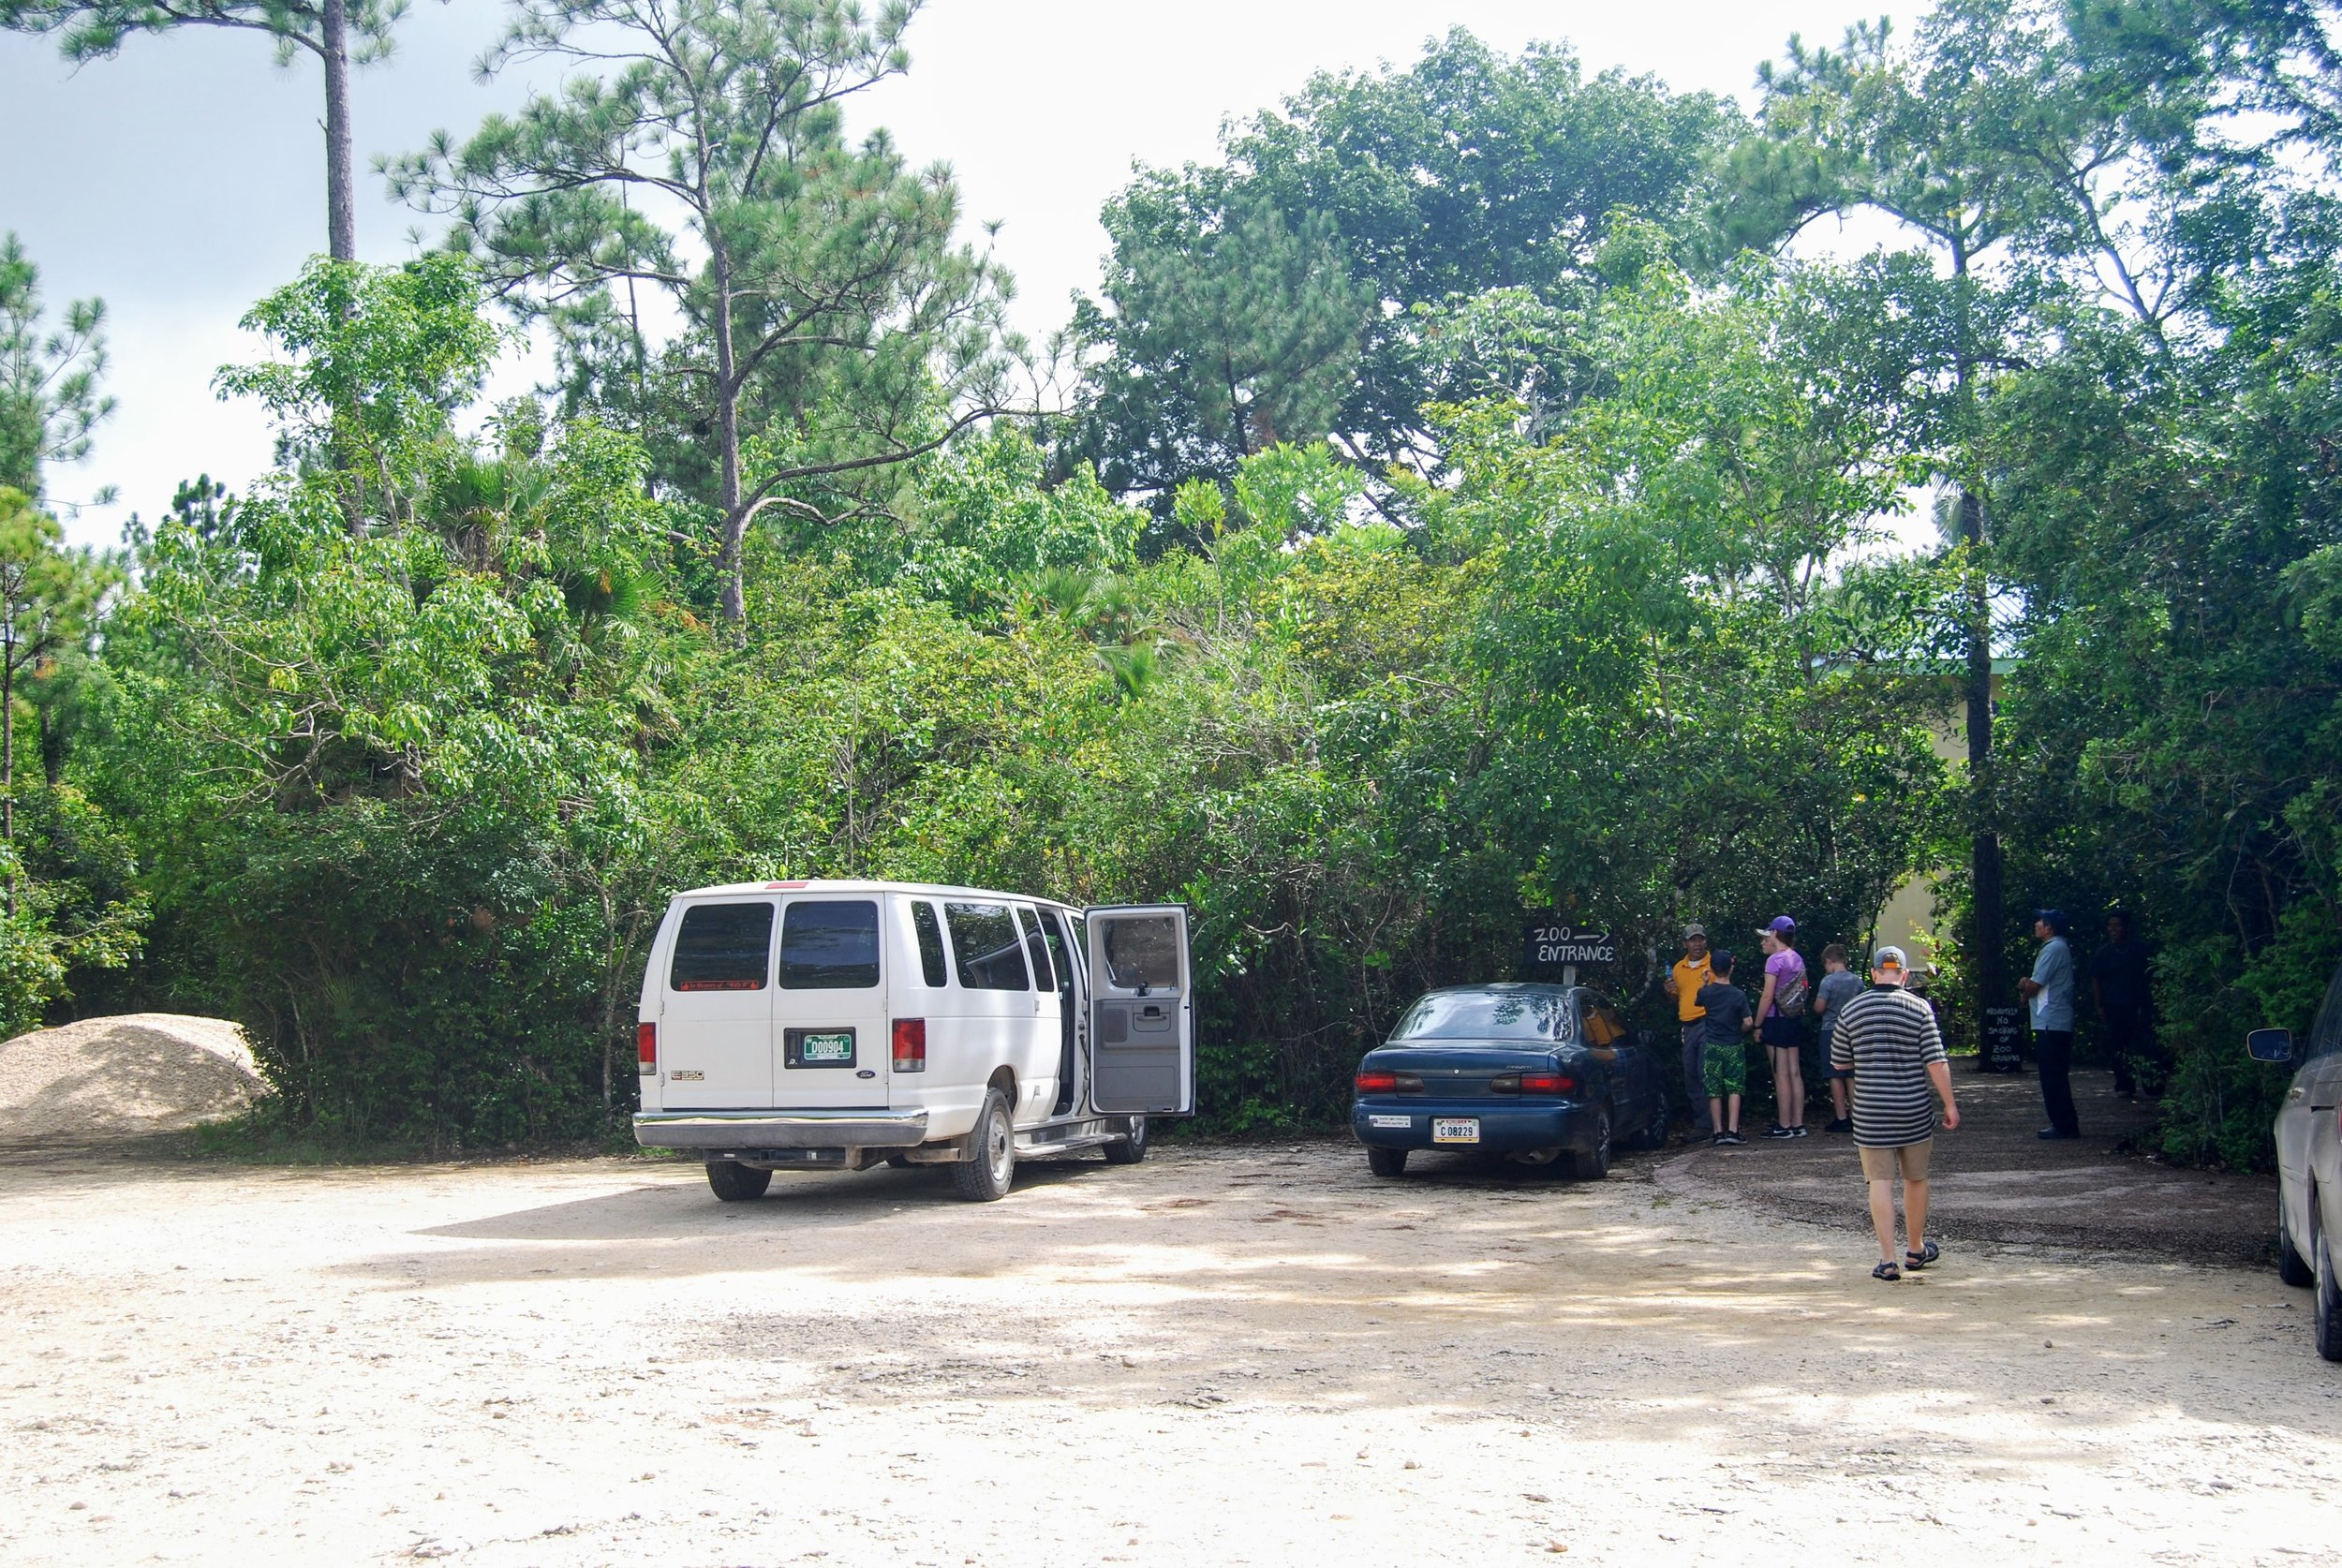 Parking lot and Zoo entrance. That's our van from William's Belize Shuttle on the left.